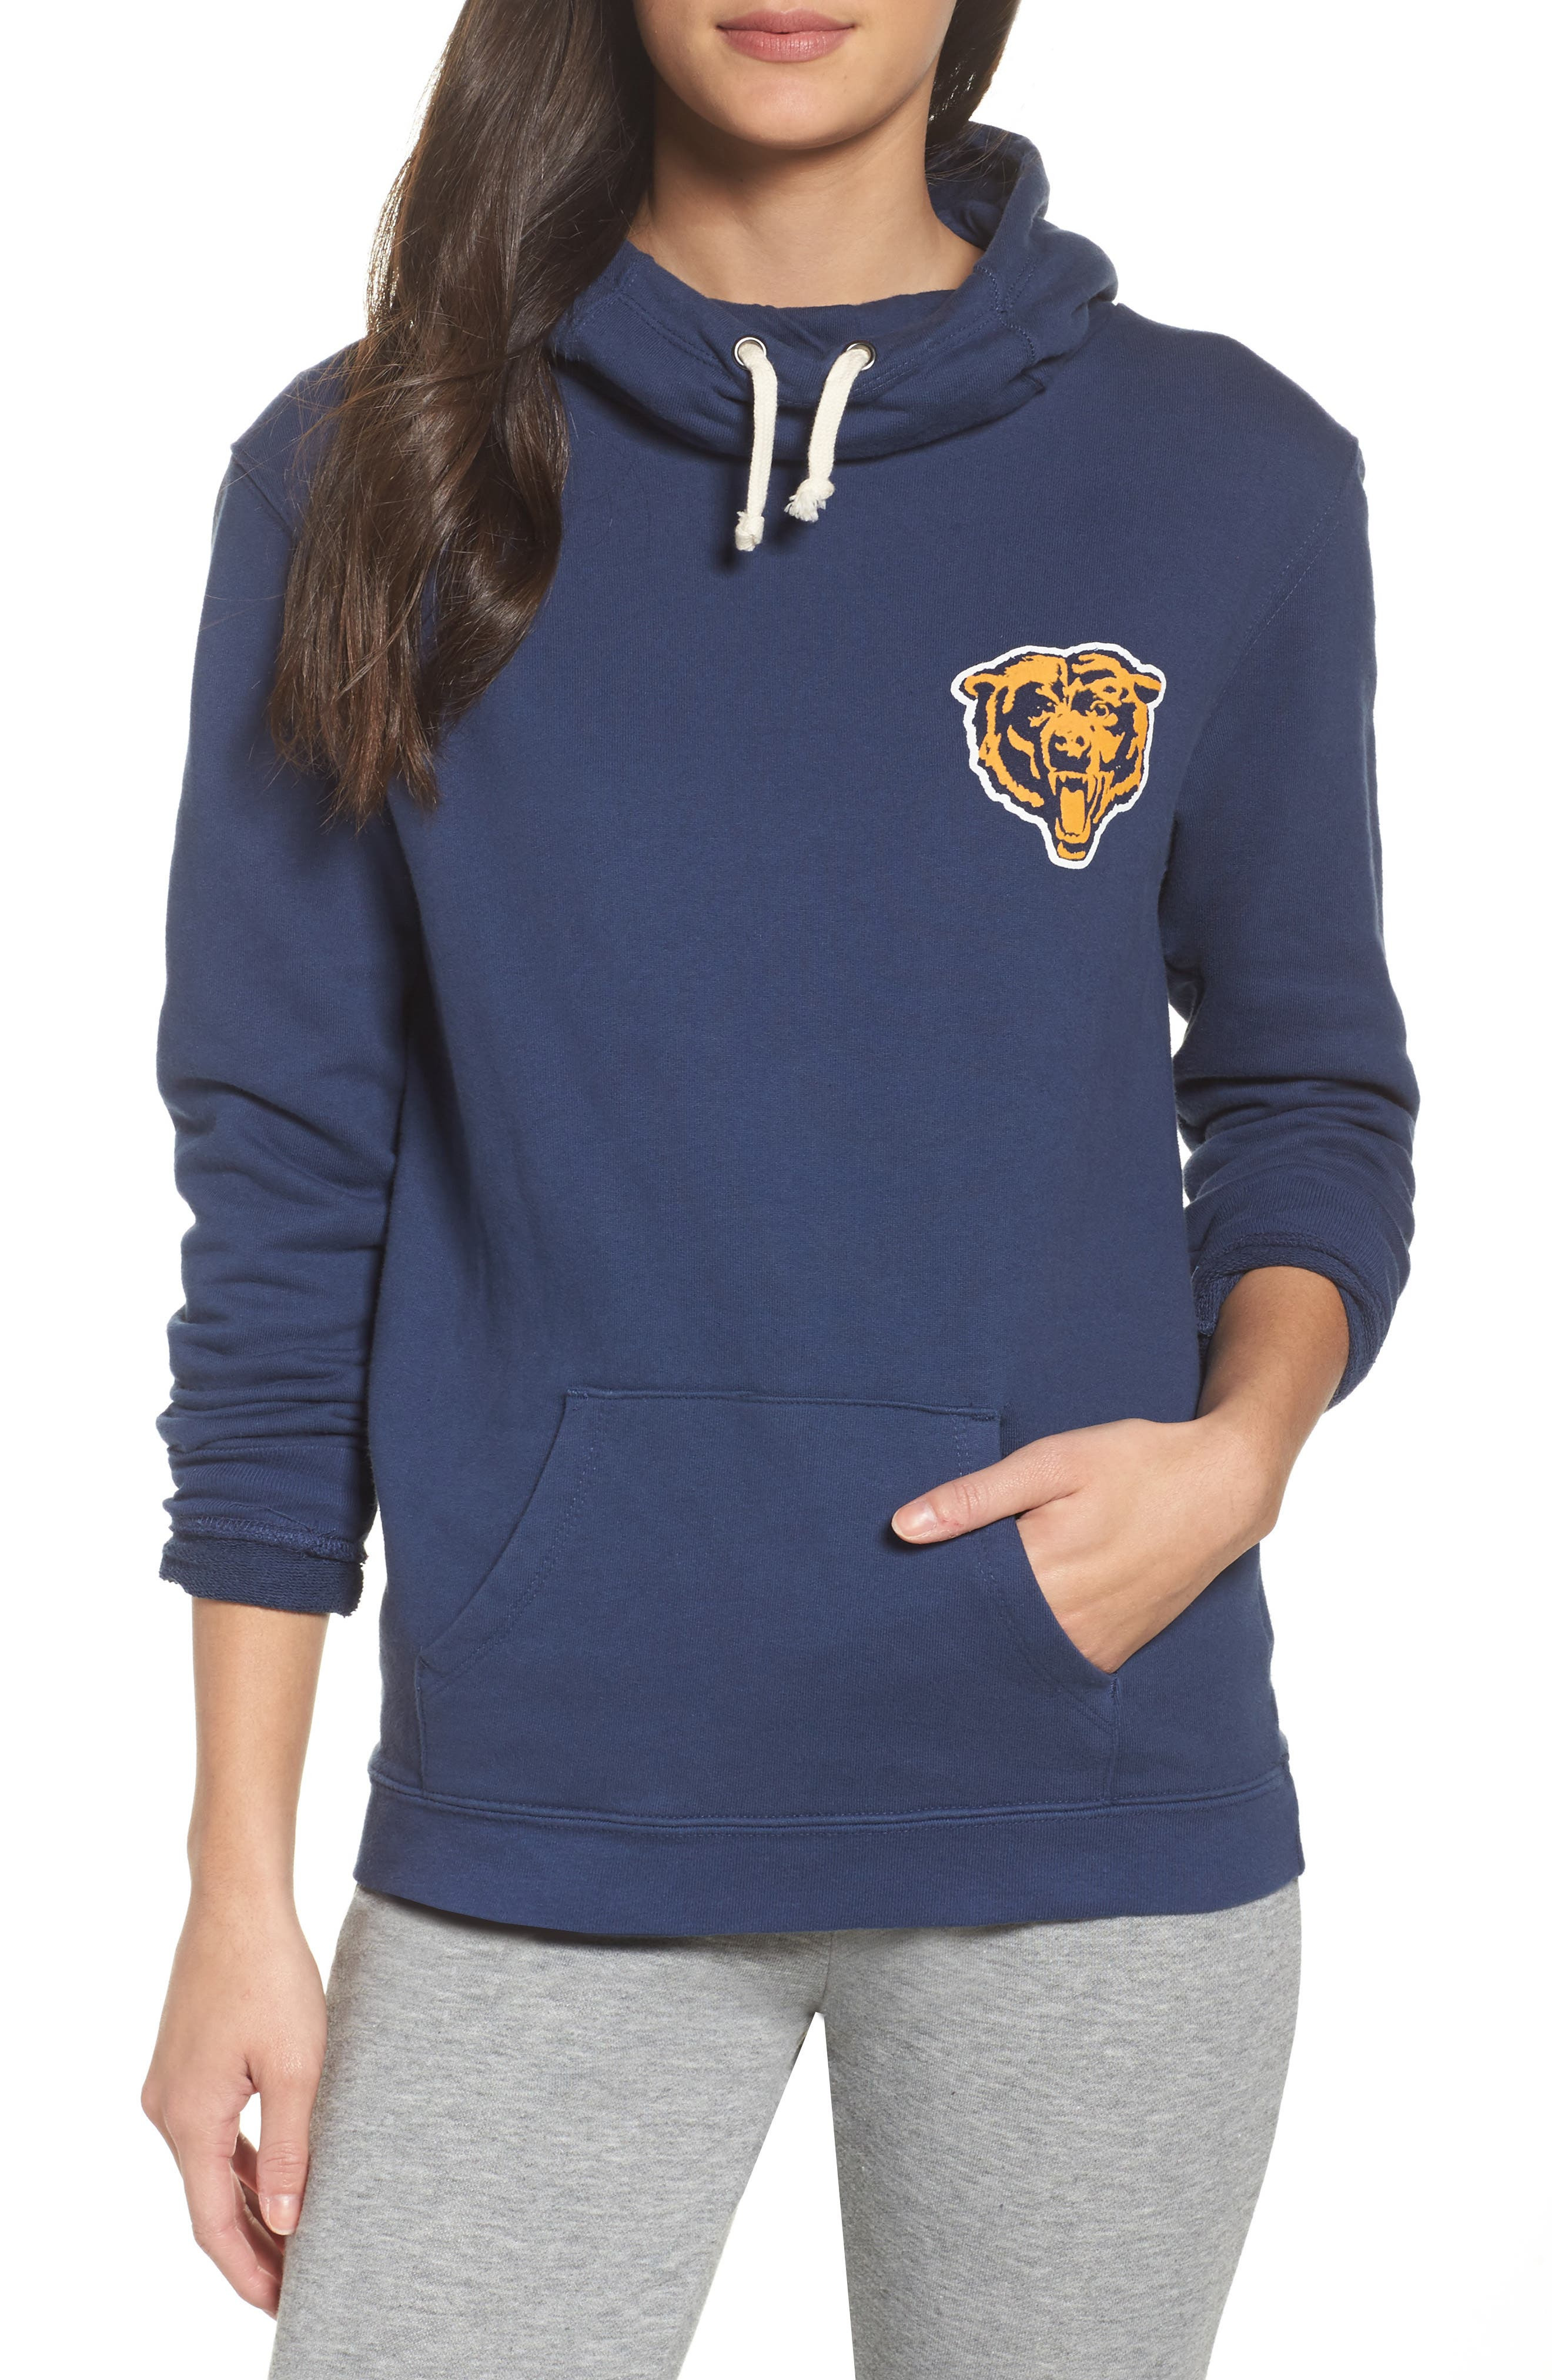 NFL Chicago Bears Sunday Hoodie,                             Main thumbnail 1, color,                             408